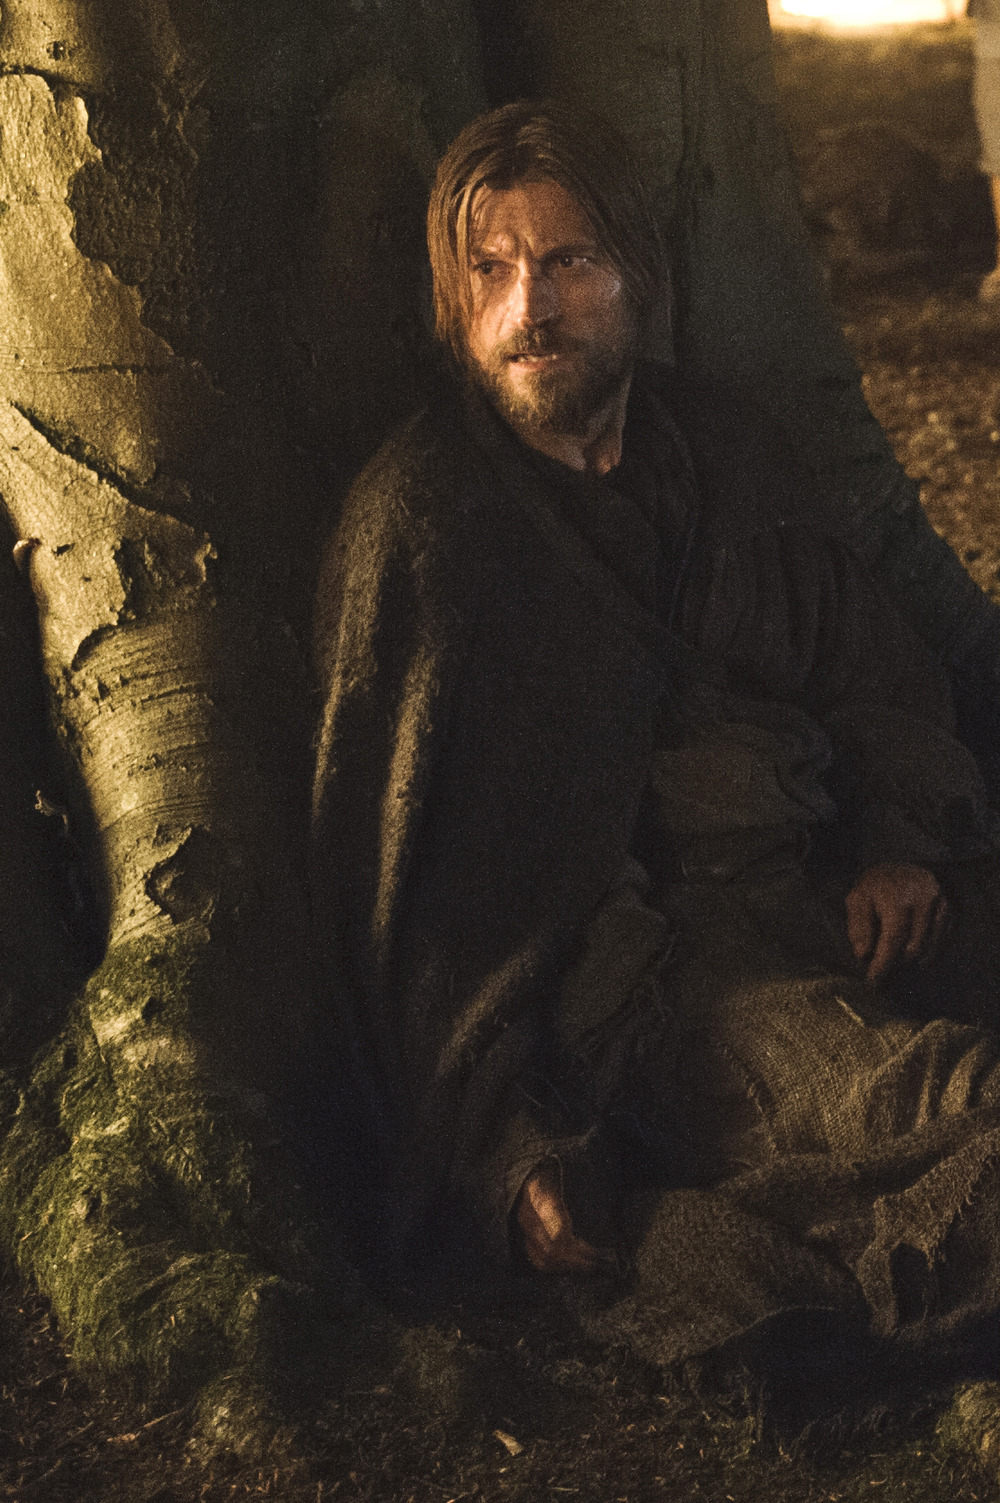 Game of Thrones Critic's Choice Nominations